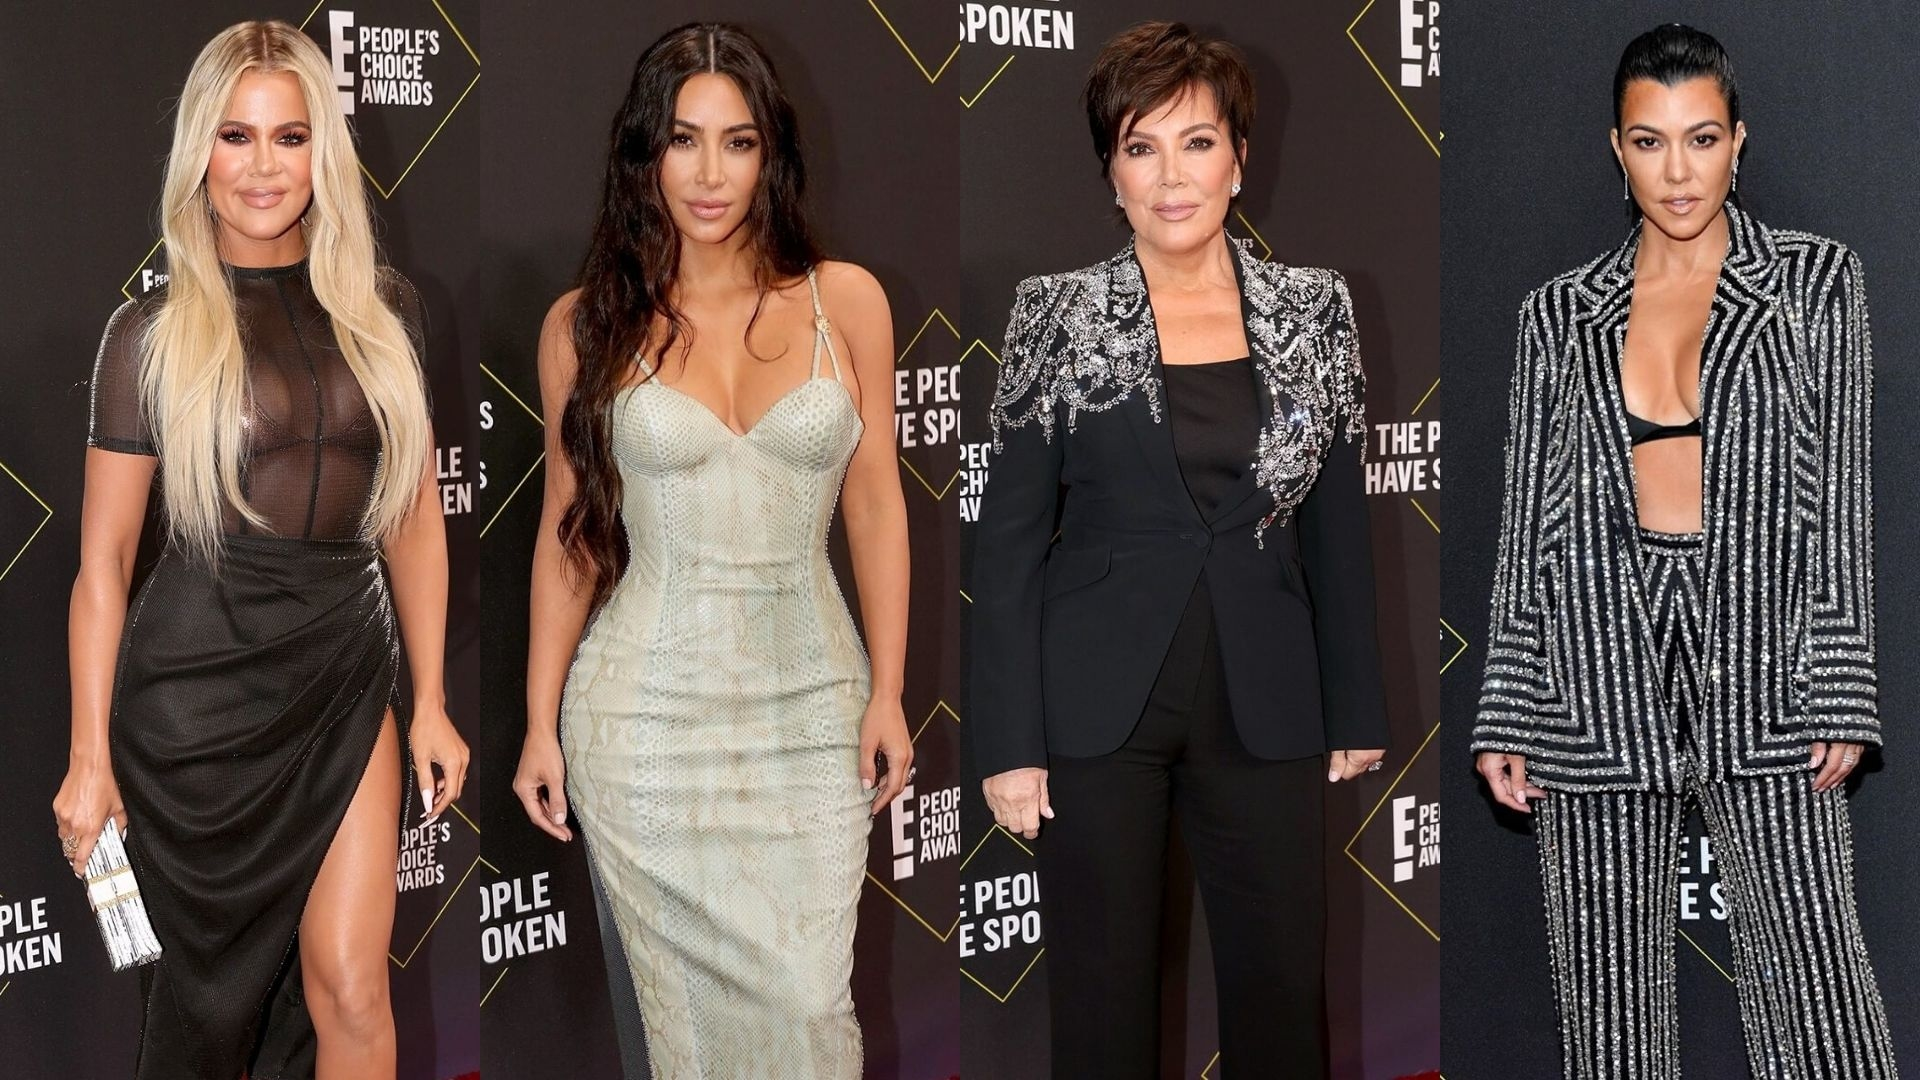 The Kardashians Just Shut Down The Red Carpet At The 2019 People's Choice Awards As Per Usual